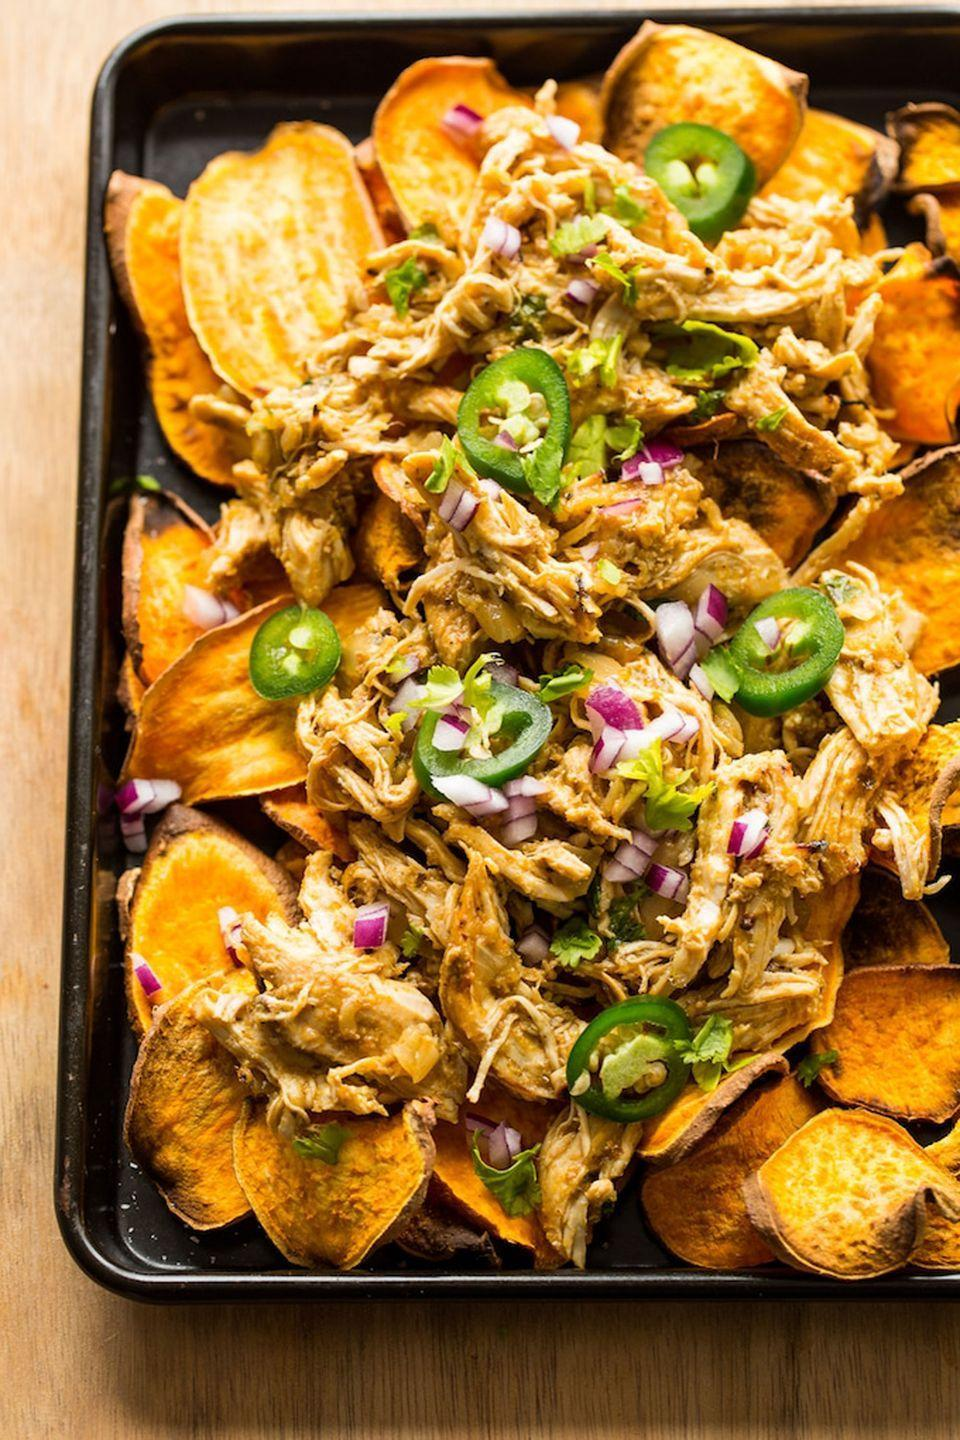 """<p>Swap out tortilla chips for sliced sweet potatoes for a healthy twist on your favorite bar food.</p><p><strong>Get the recipe at <a href=""""https://www.asaucykitchen.com/sweet-potato-nachos-with-chicken-carnitas/"""" rel=""""nofollow noopener"""" target=""""_blank"""" data-ylk=""""slk:A Saucy Kitchen"""" class=""""link rapid-noclick-resp"""">A Saucy Kitchen</a>.</strong></p><p><strong><a class=""""link rapid-noclick-resp"""" href=""""https://www.amazon.com/Nordic-Ware-Natural-Aluminum-Commercial/dp/B0049C2S32/?tag=syn-yahoo-20&ascsubtag=%5Bartid%7C10050.g.877%5Bsrc%7Cyahoo-us"""" rel=""""nofollow noopener"""" target=""""_blank"""" data-ylk=""""slk:SHOP BAKING SHEETS"""">SHOP BAKING SHEETS</a><br></strong></p>"""